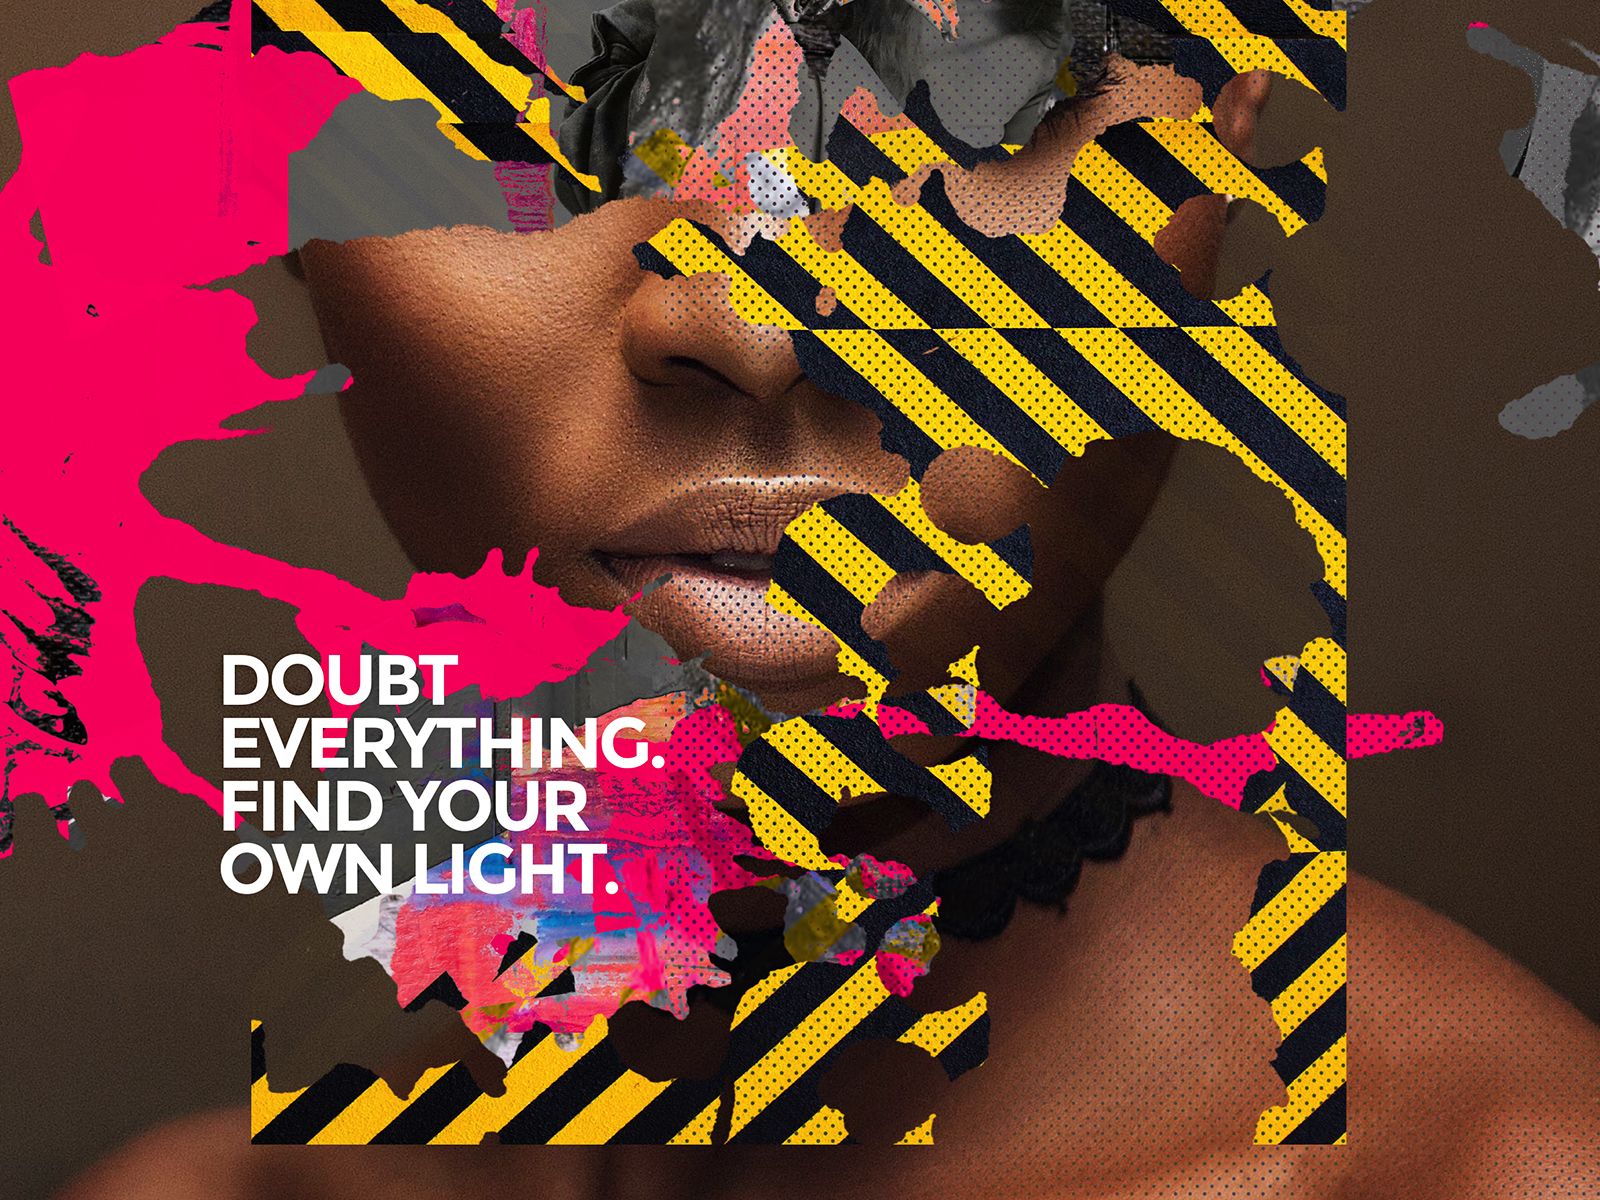 Doubt Everything. Find Your Own Light. typogaphy type illustraion art poster design poster art collage poster